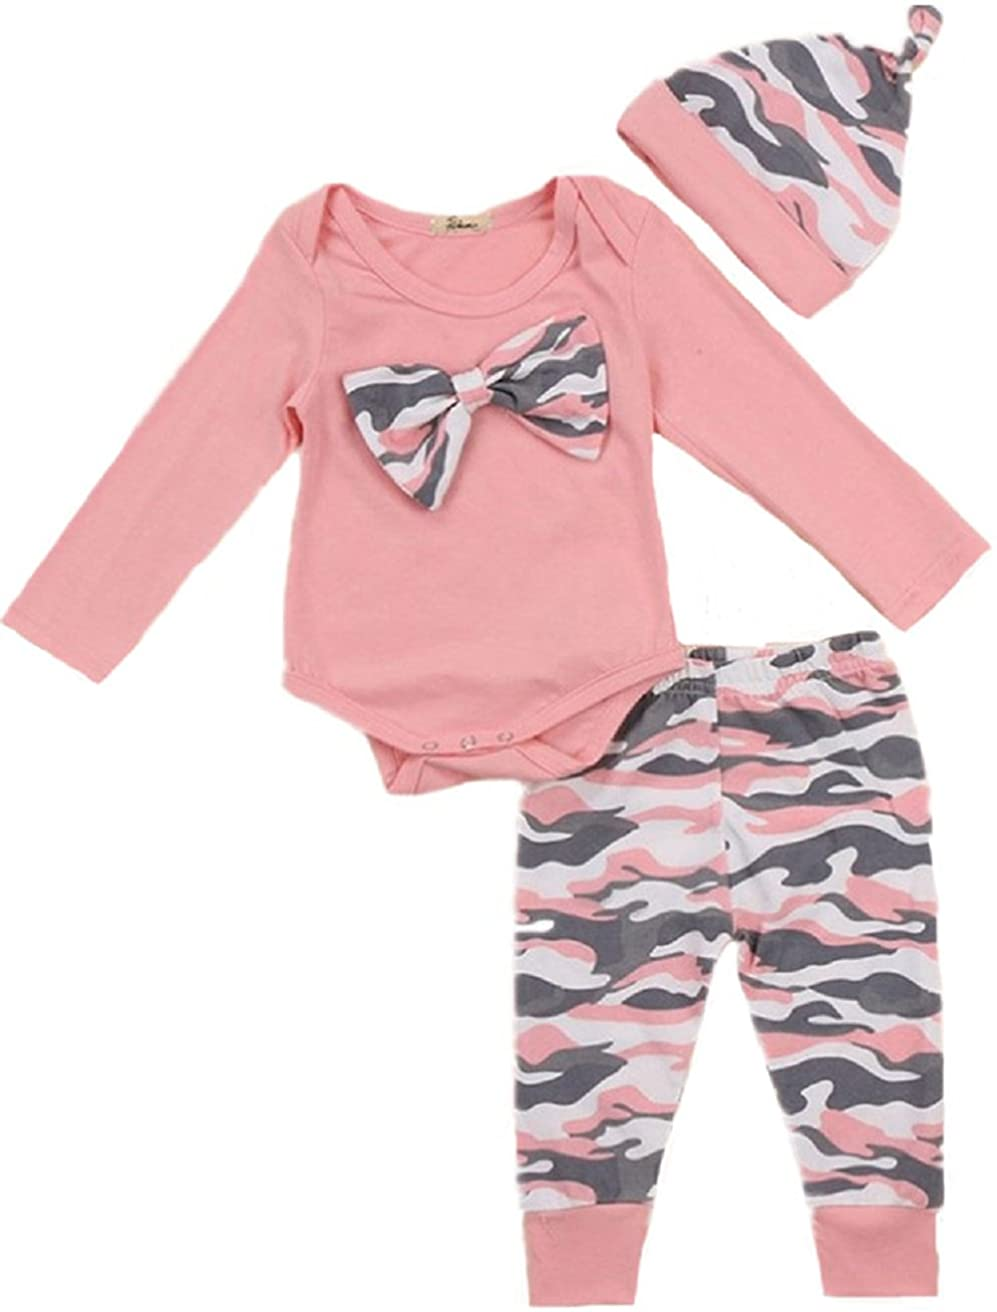 Baby Girl Clothes Set New Born Toddler Girl Long Sleeve Romper Camouflage Pant Hat 3 Pieces Outfit Set